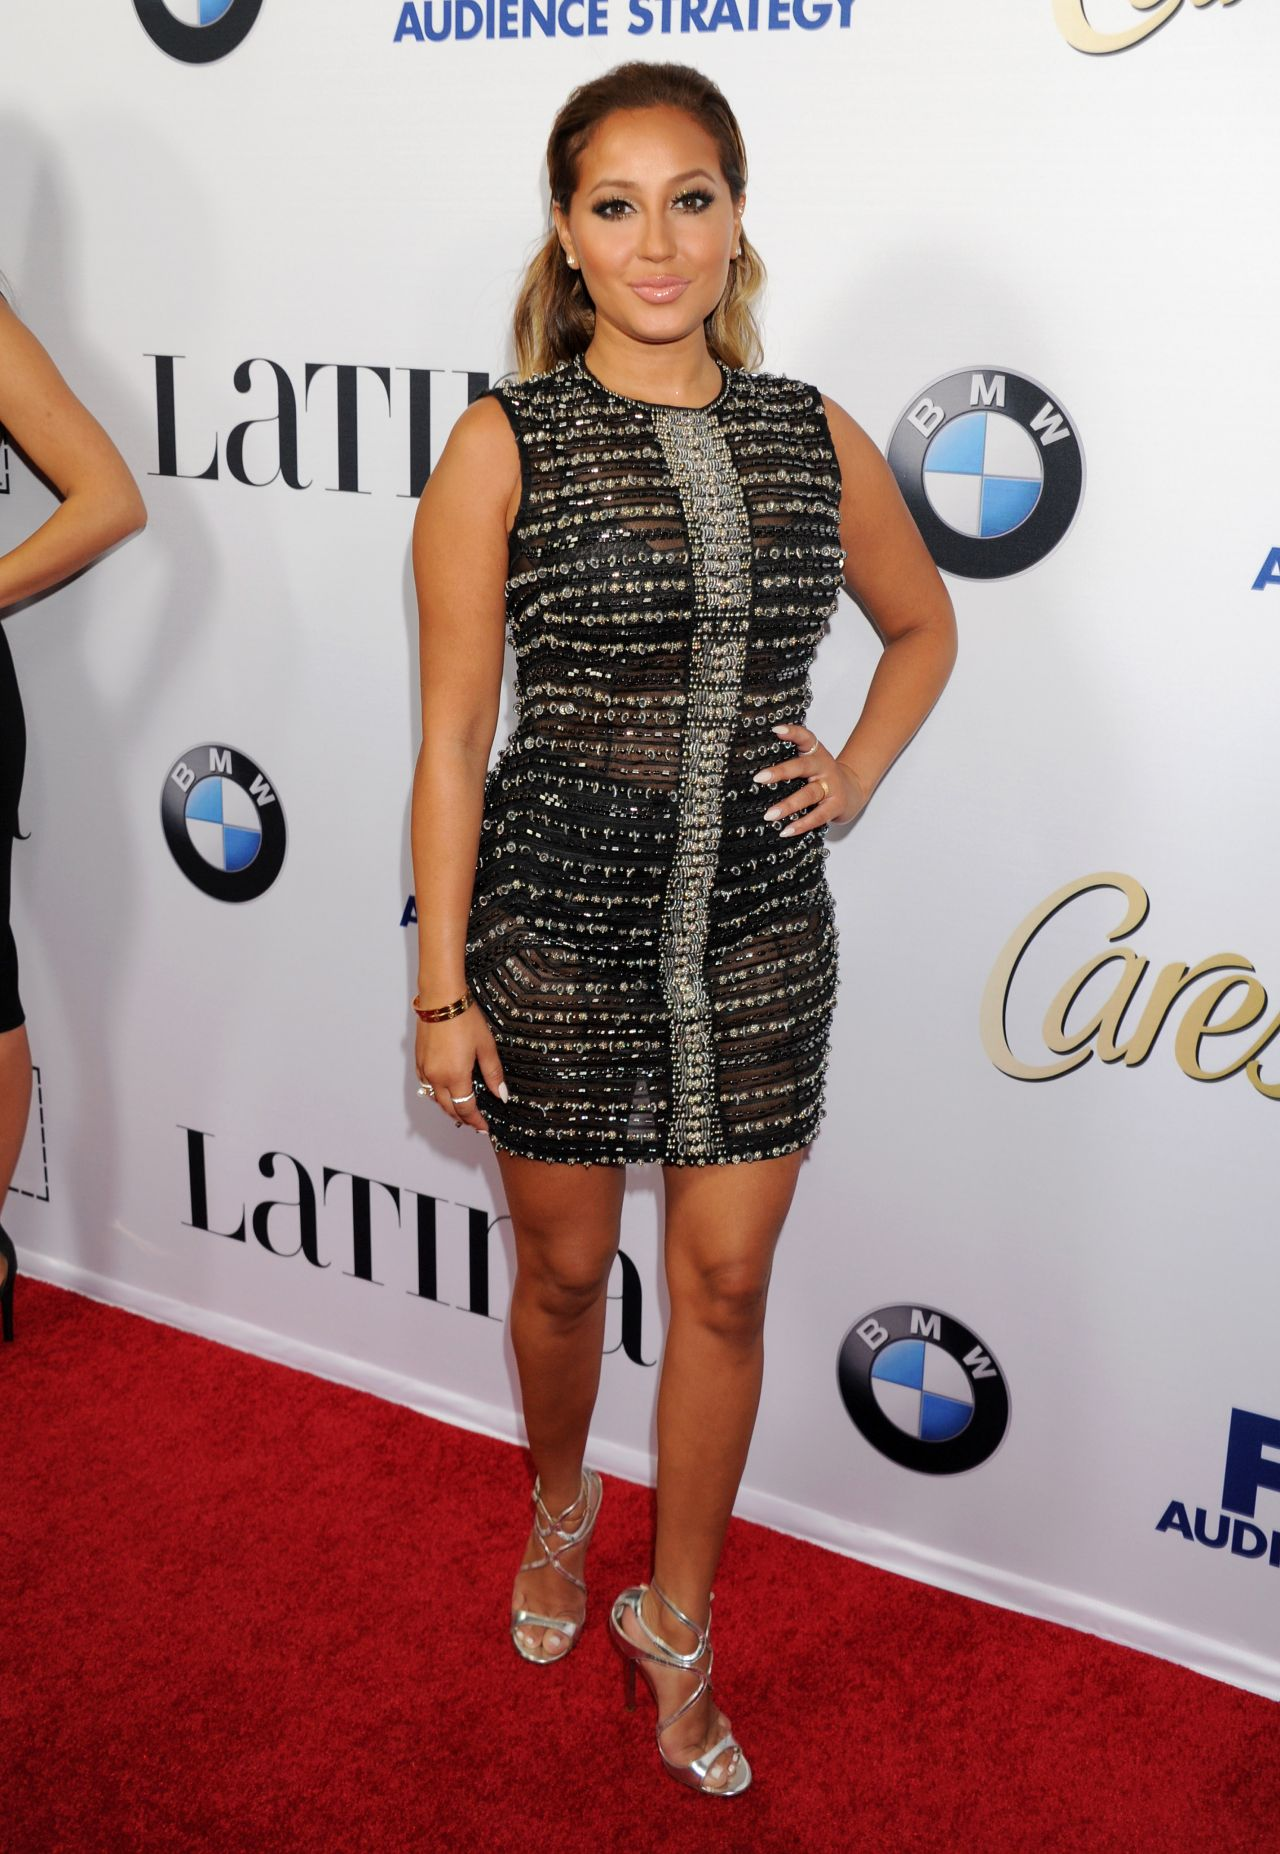 Adrienne Bailon – Latina Media Ventures Hosts Latina Hot List Party in West Hollywood, October 2015